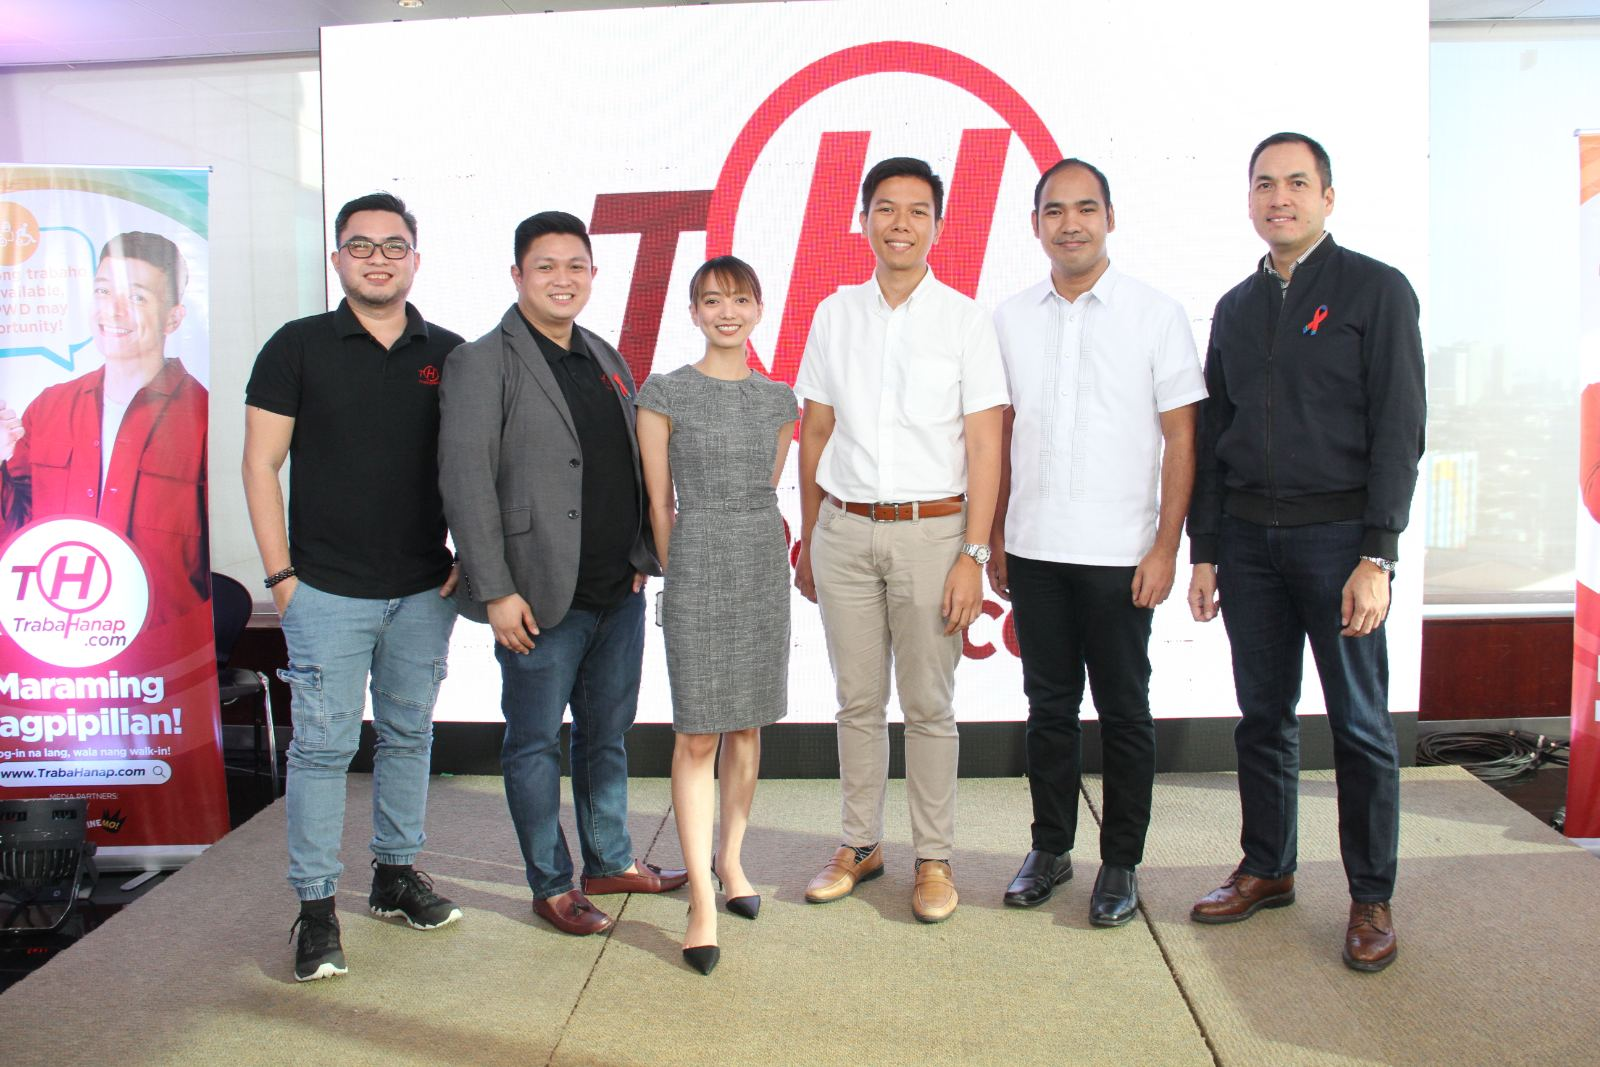 More jobs for Filipinos available as ABS-CBN launches 'Trabahanap'